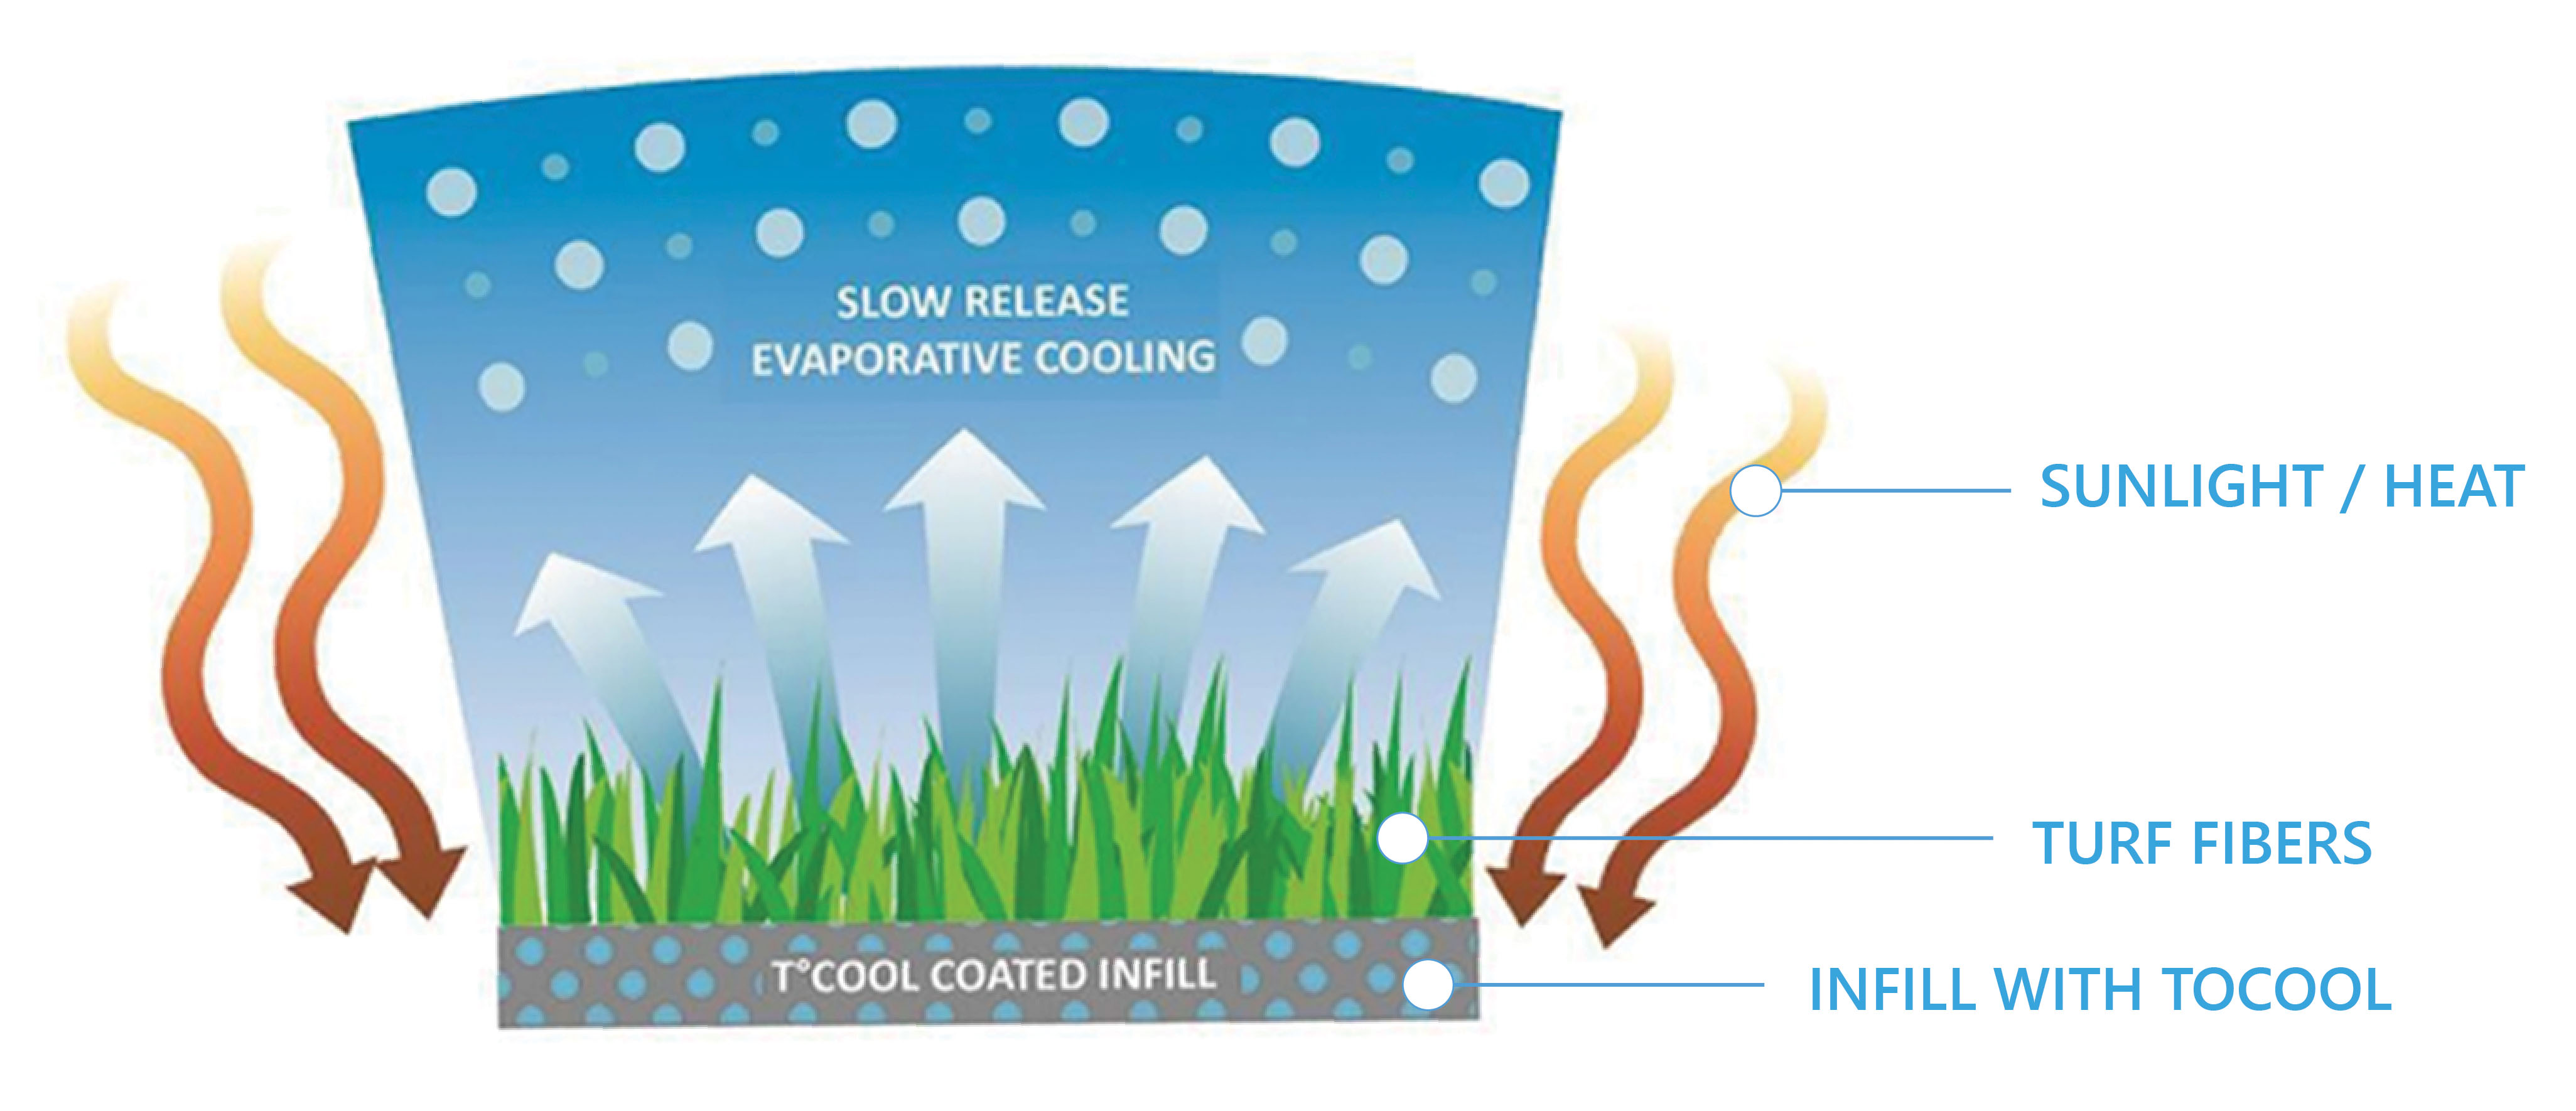 TCool synthetic turf cooling technology. Principle of evaporative cooling.